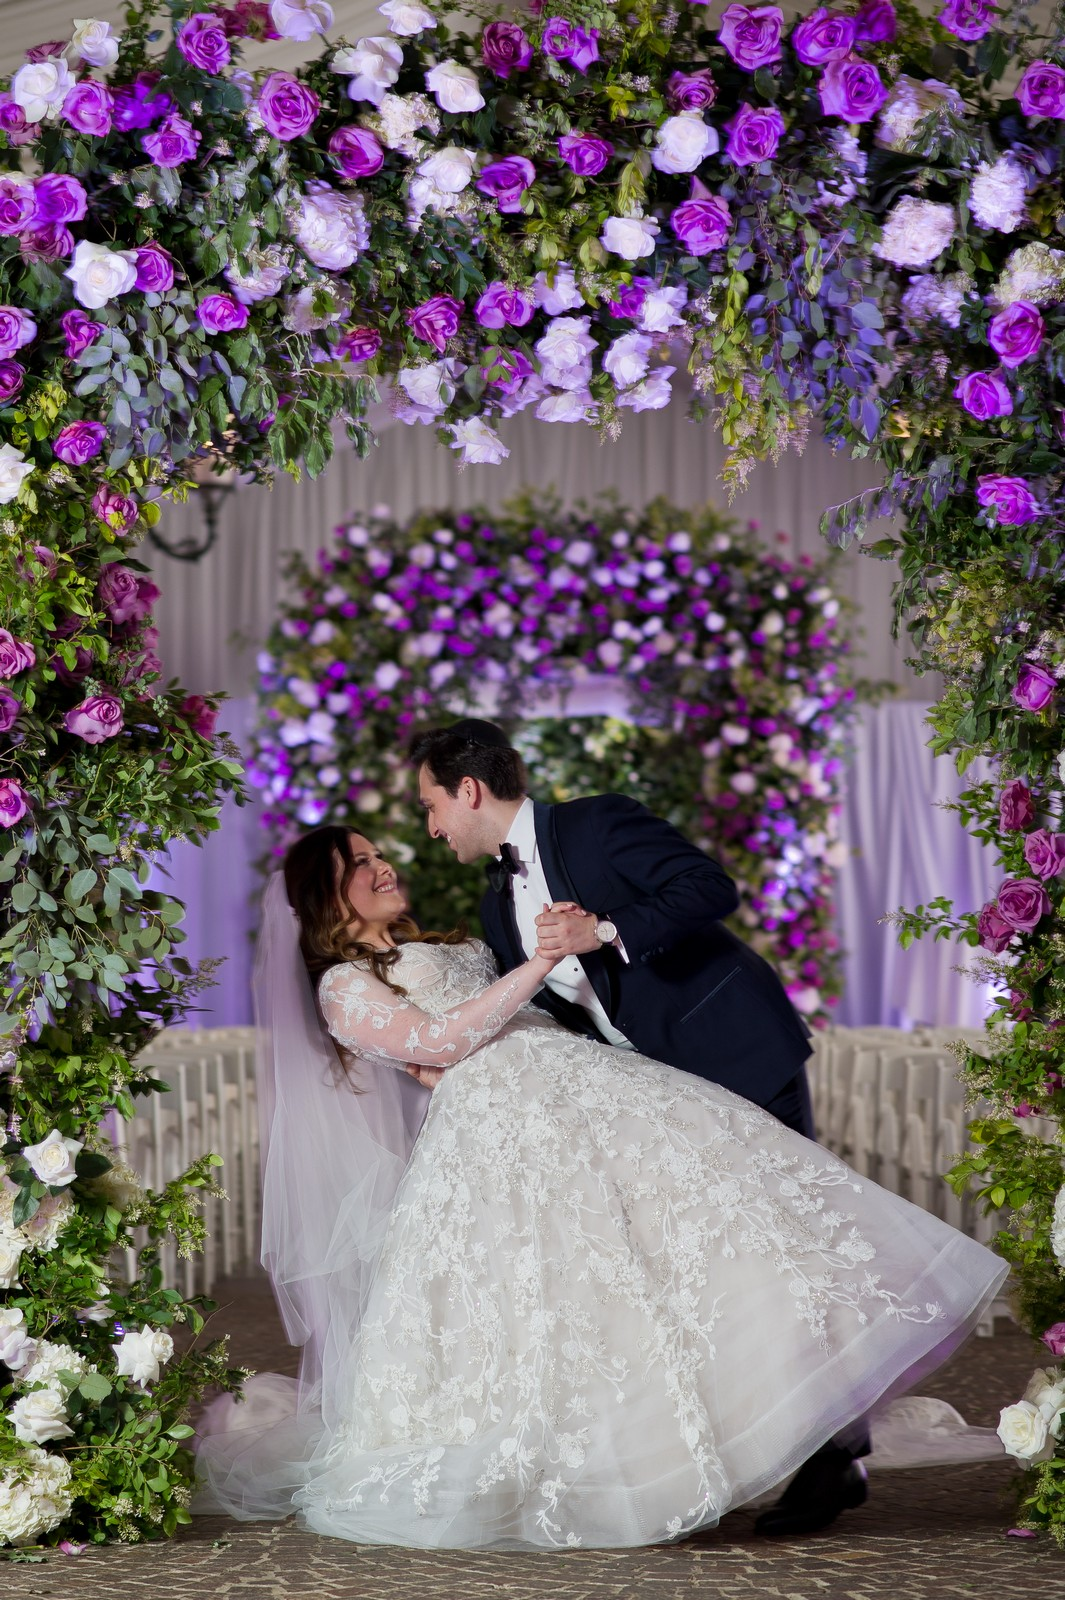 Abby and Miles' Modern Jewish Wedding at Nicotra's Ballroom, Hilton Garden Inn, Staten Island, NY, Photos by Chaim Schvarcz bride groom ceremony